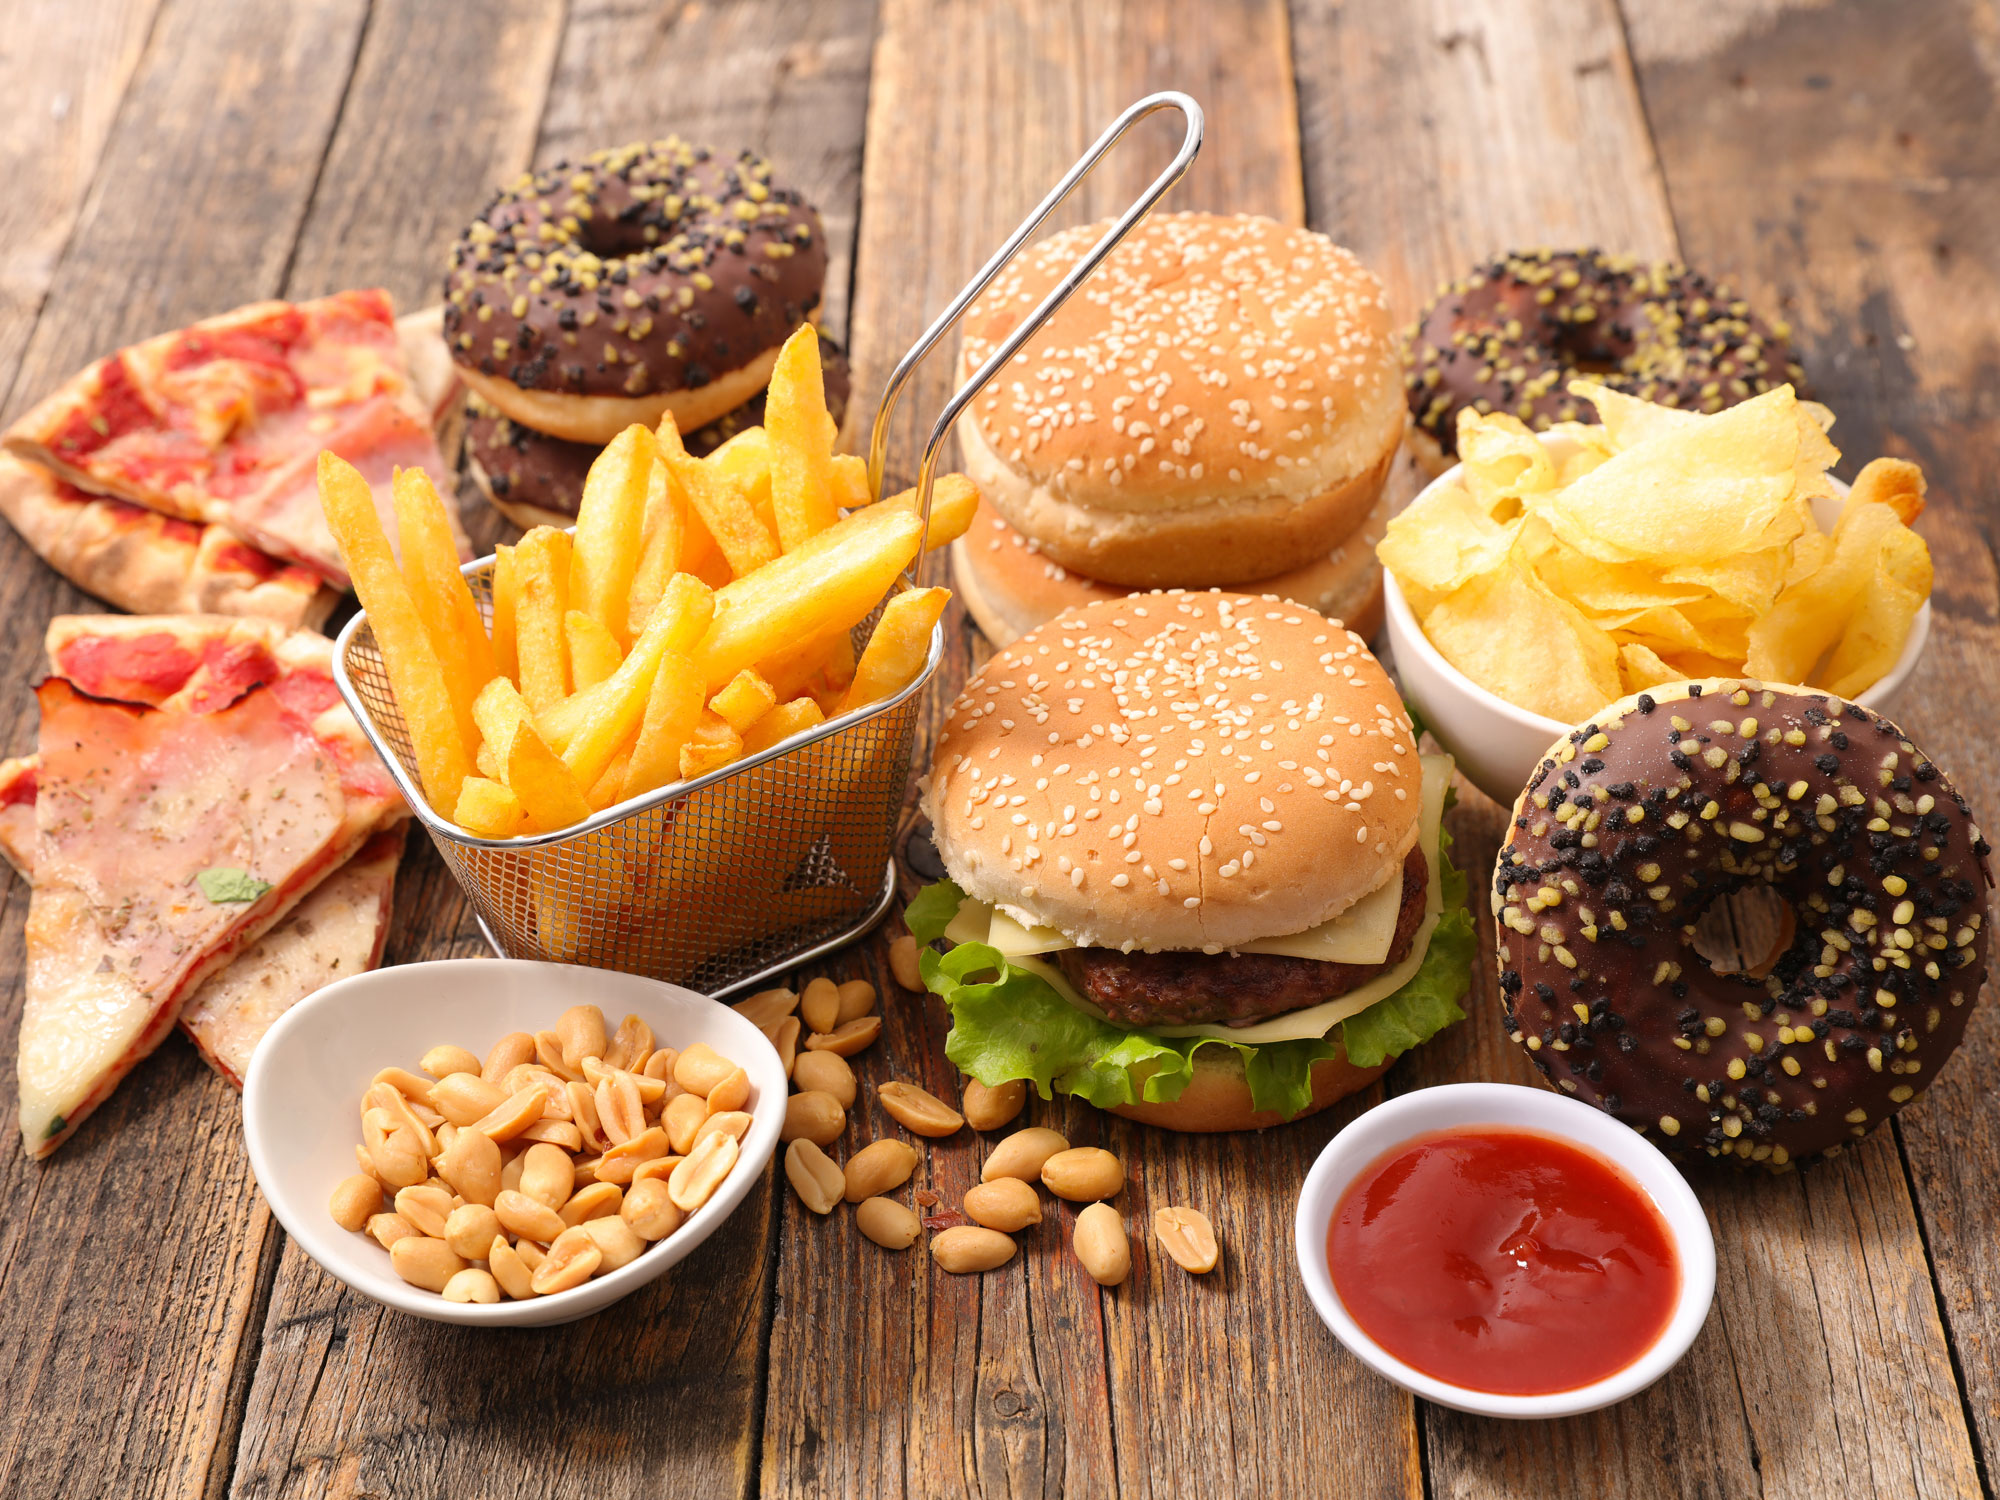 Fast Food As Bad For You As A Bacterial Infection